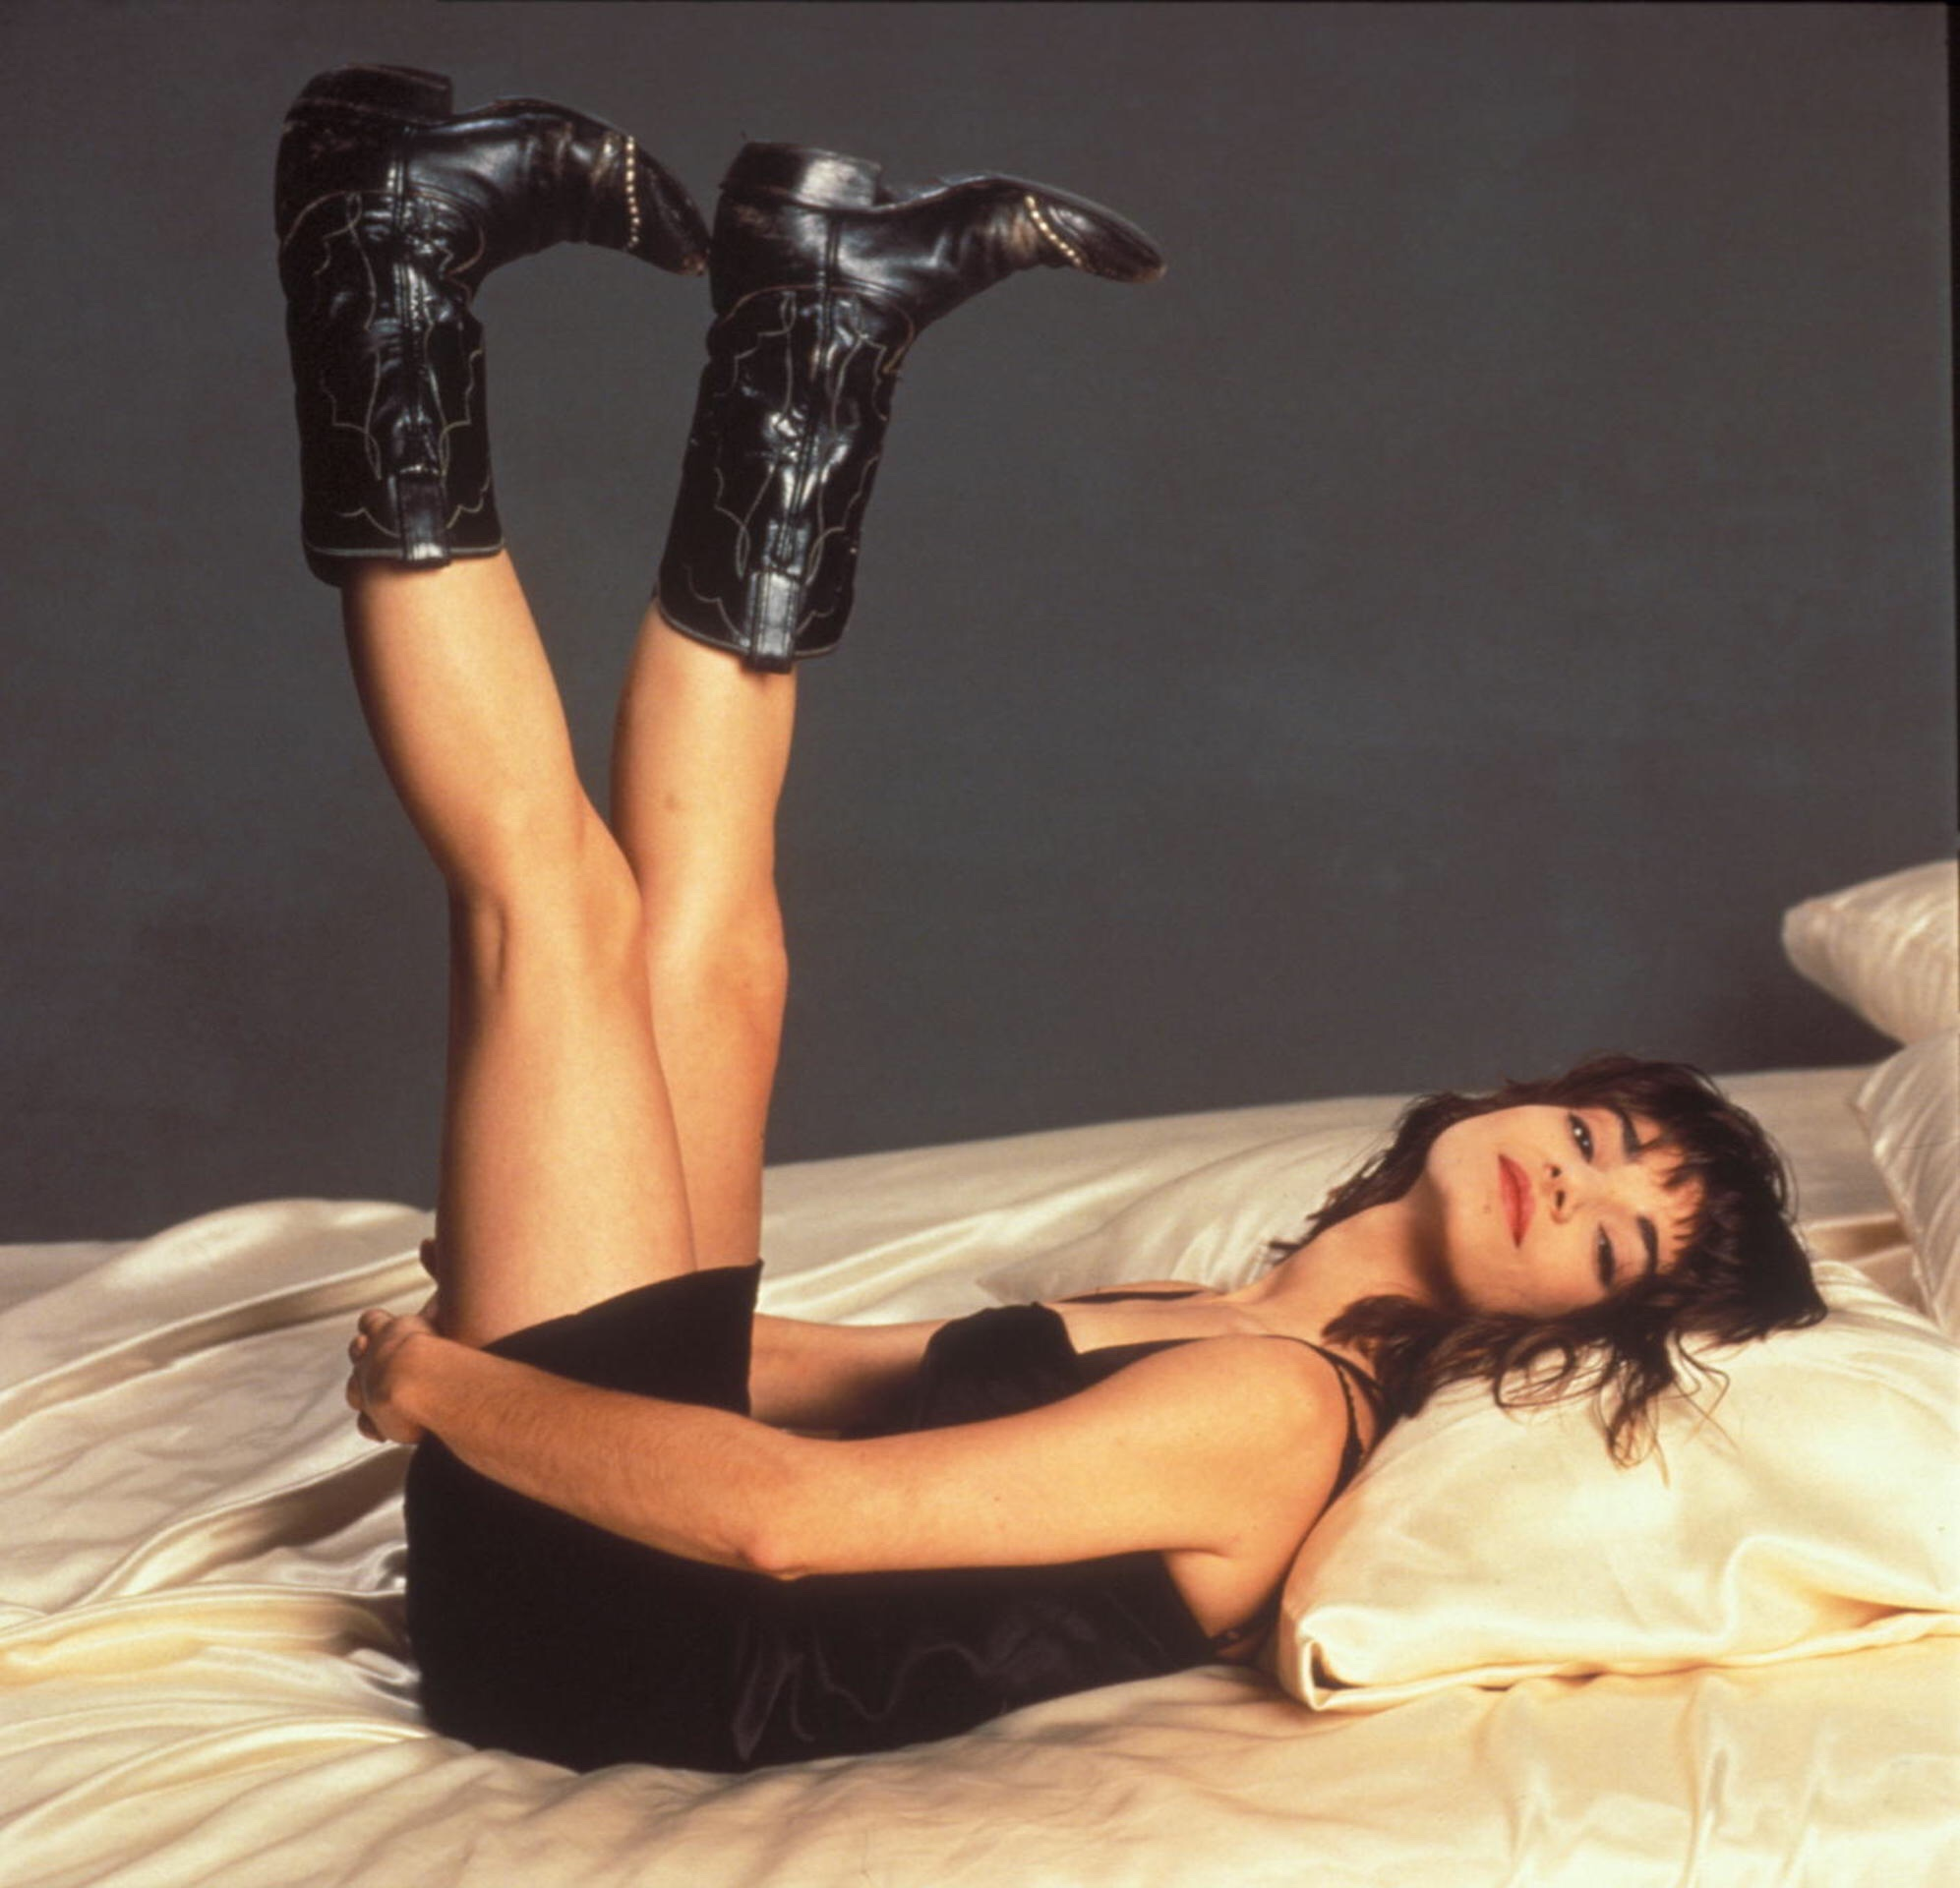 Laura San Giacomo lying on her back with her feet in the air, wearing a black dress and black boots